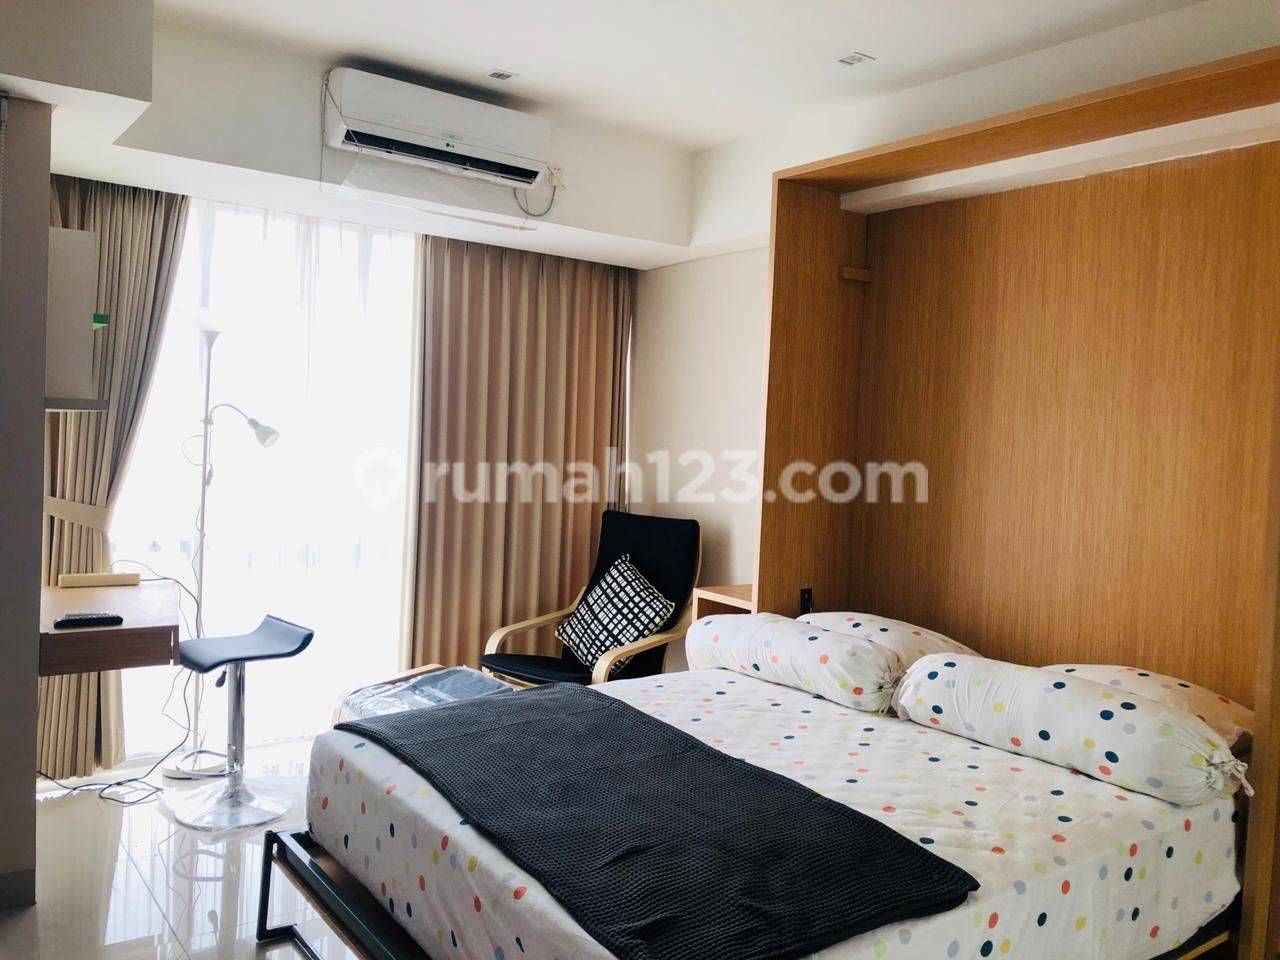 Apartemen Super murah The H Residance Full Furnish